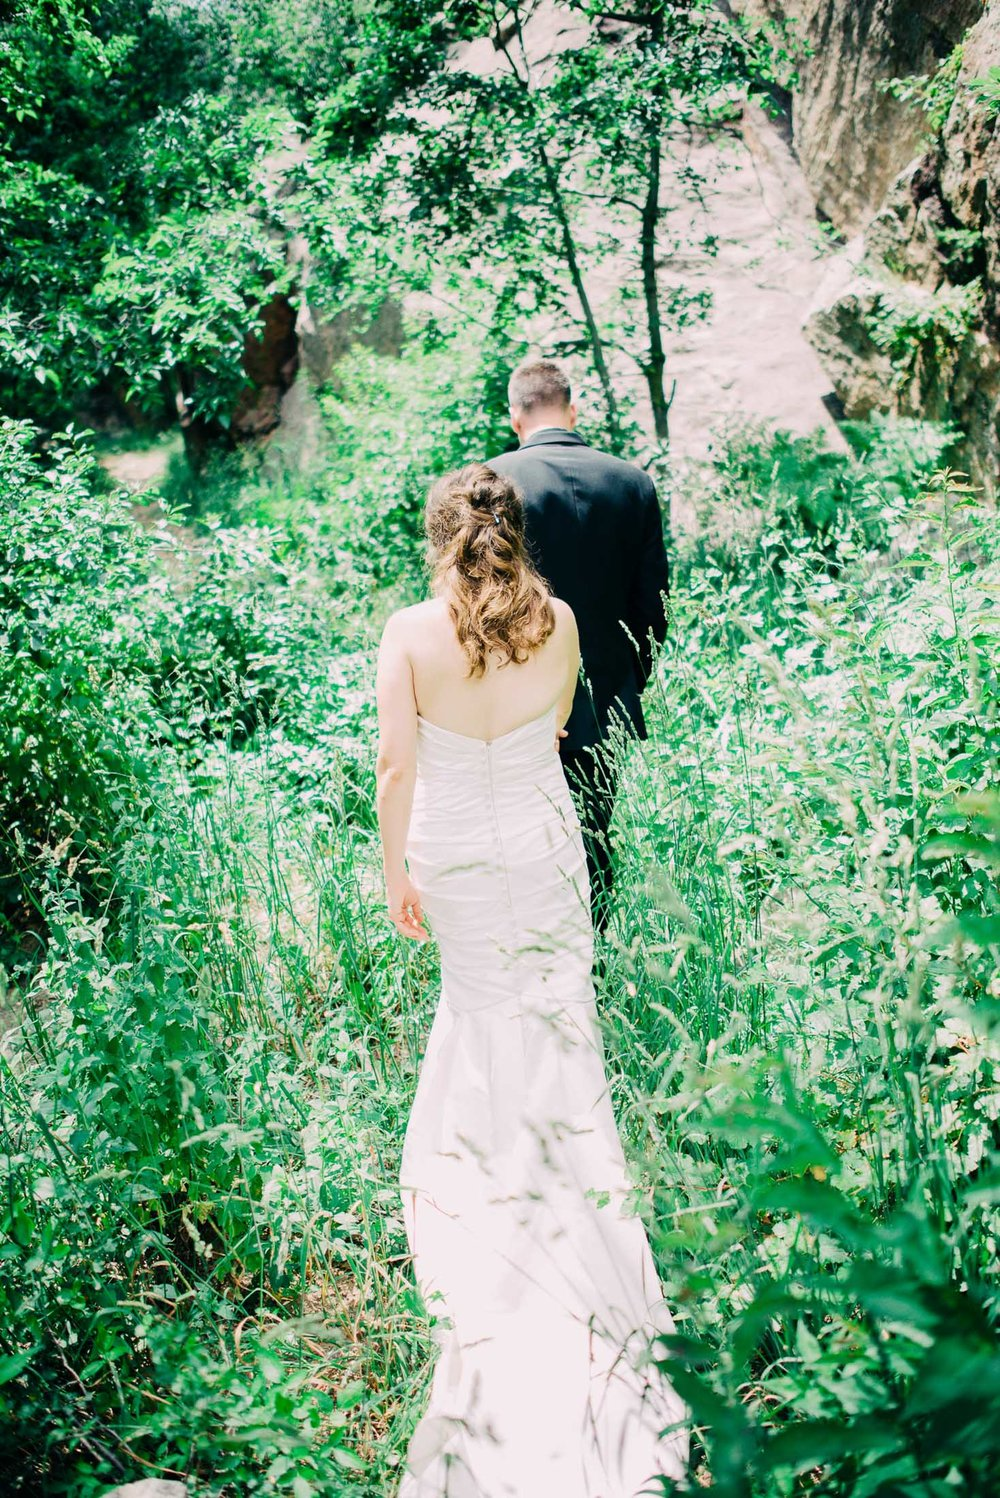 59elopement-photographer-colorado-colorado-mountain-wedding-photographer-romantic-wedding-pictures_022.jpg